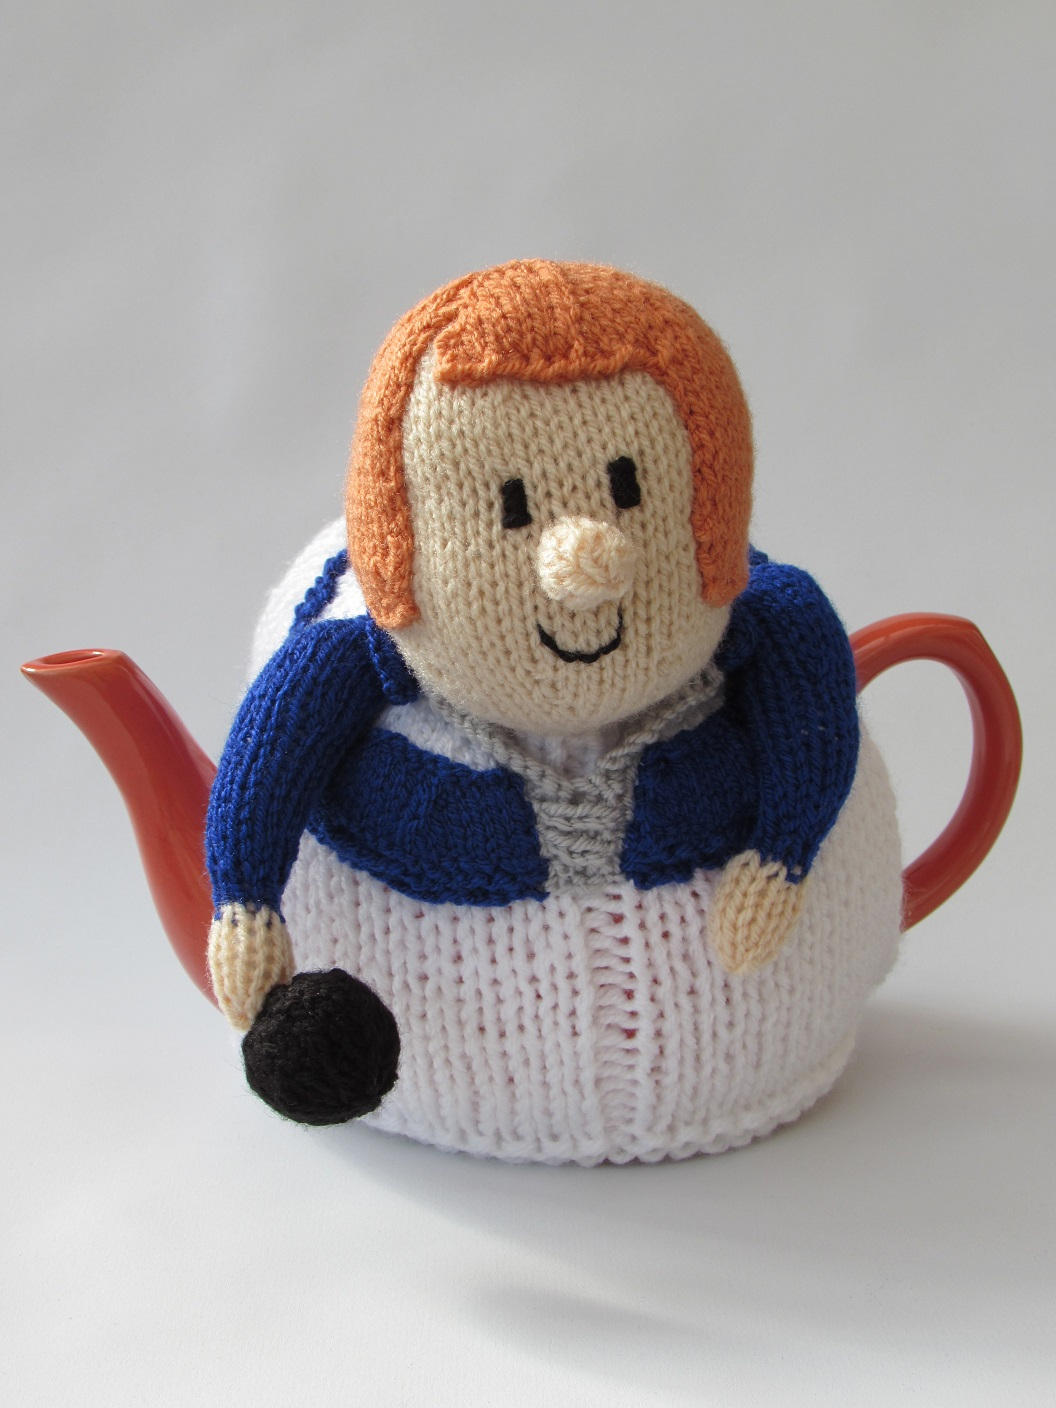 Knitting Lady At Guillotine : Bespoke tea cosies designed for individual customers